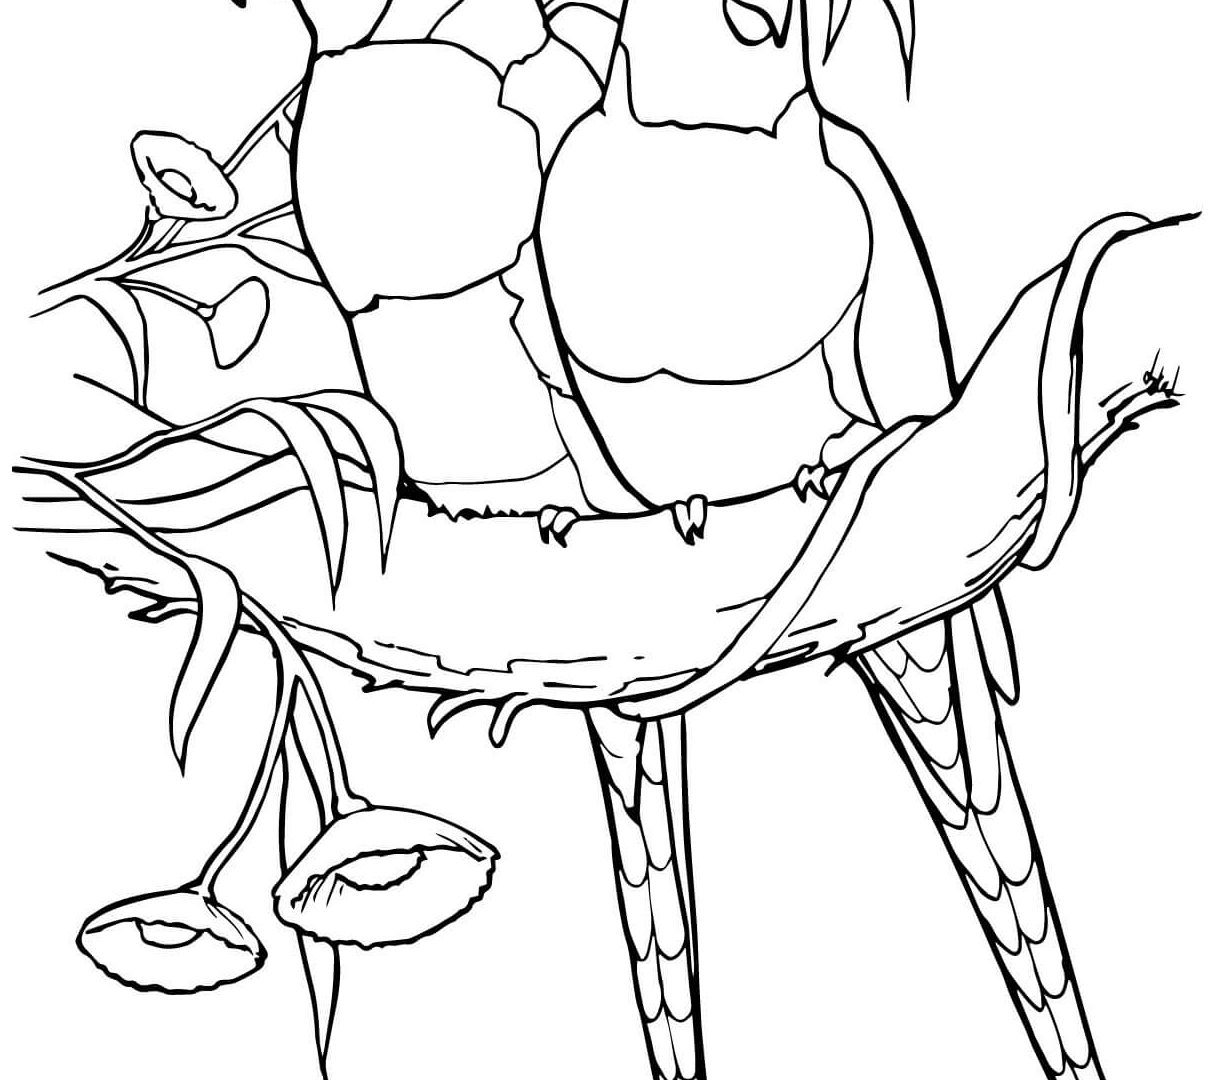 1224x1080 Bird Coloring Page Printable To Pretty Print Printables Pages